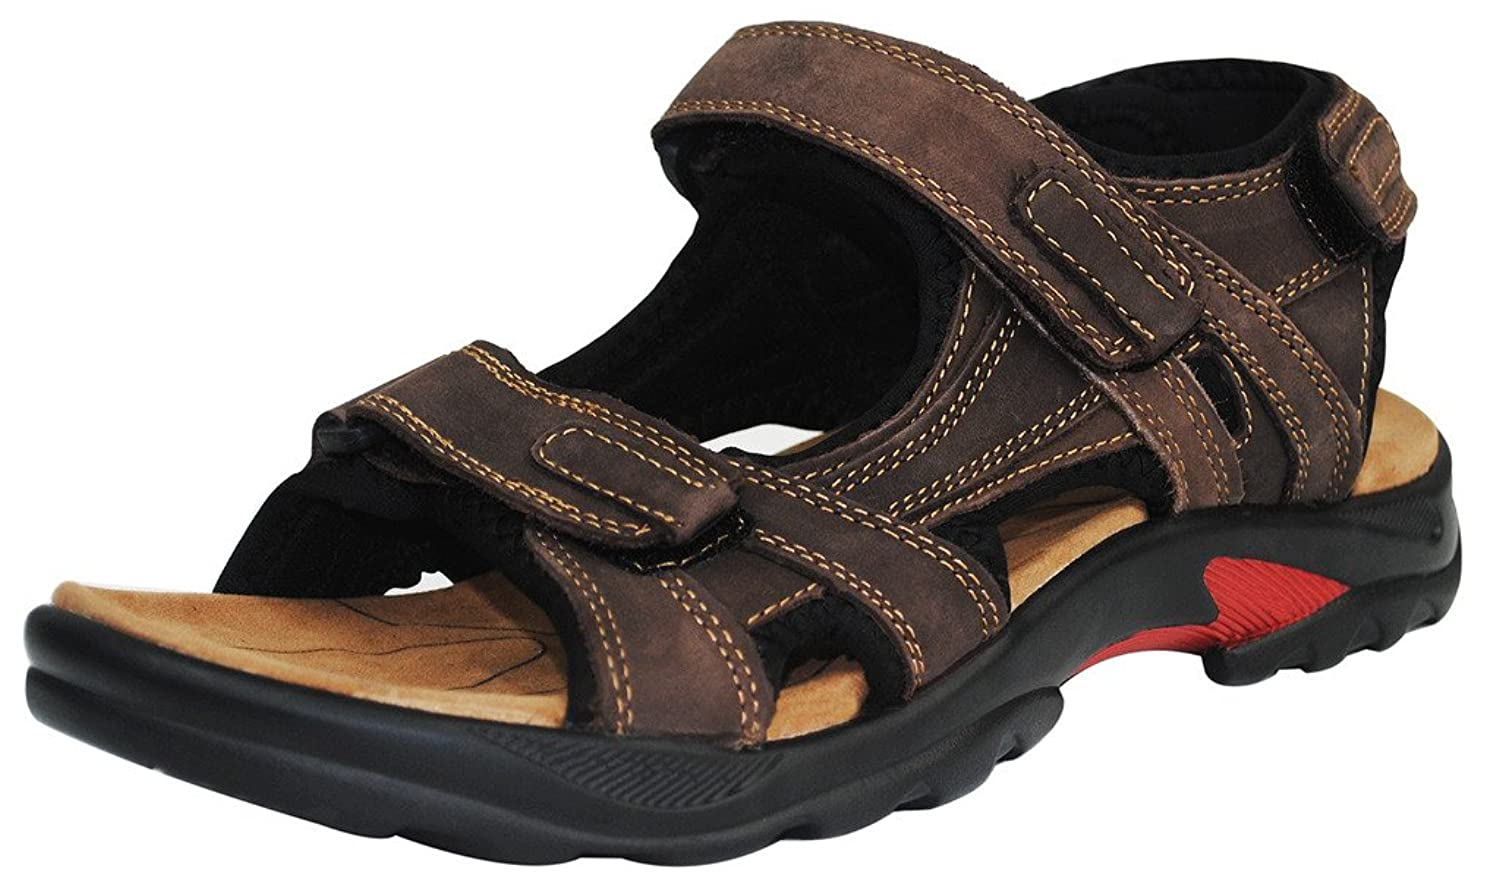 4How Men's Casual Sandals Leather Shoes Outdoor